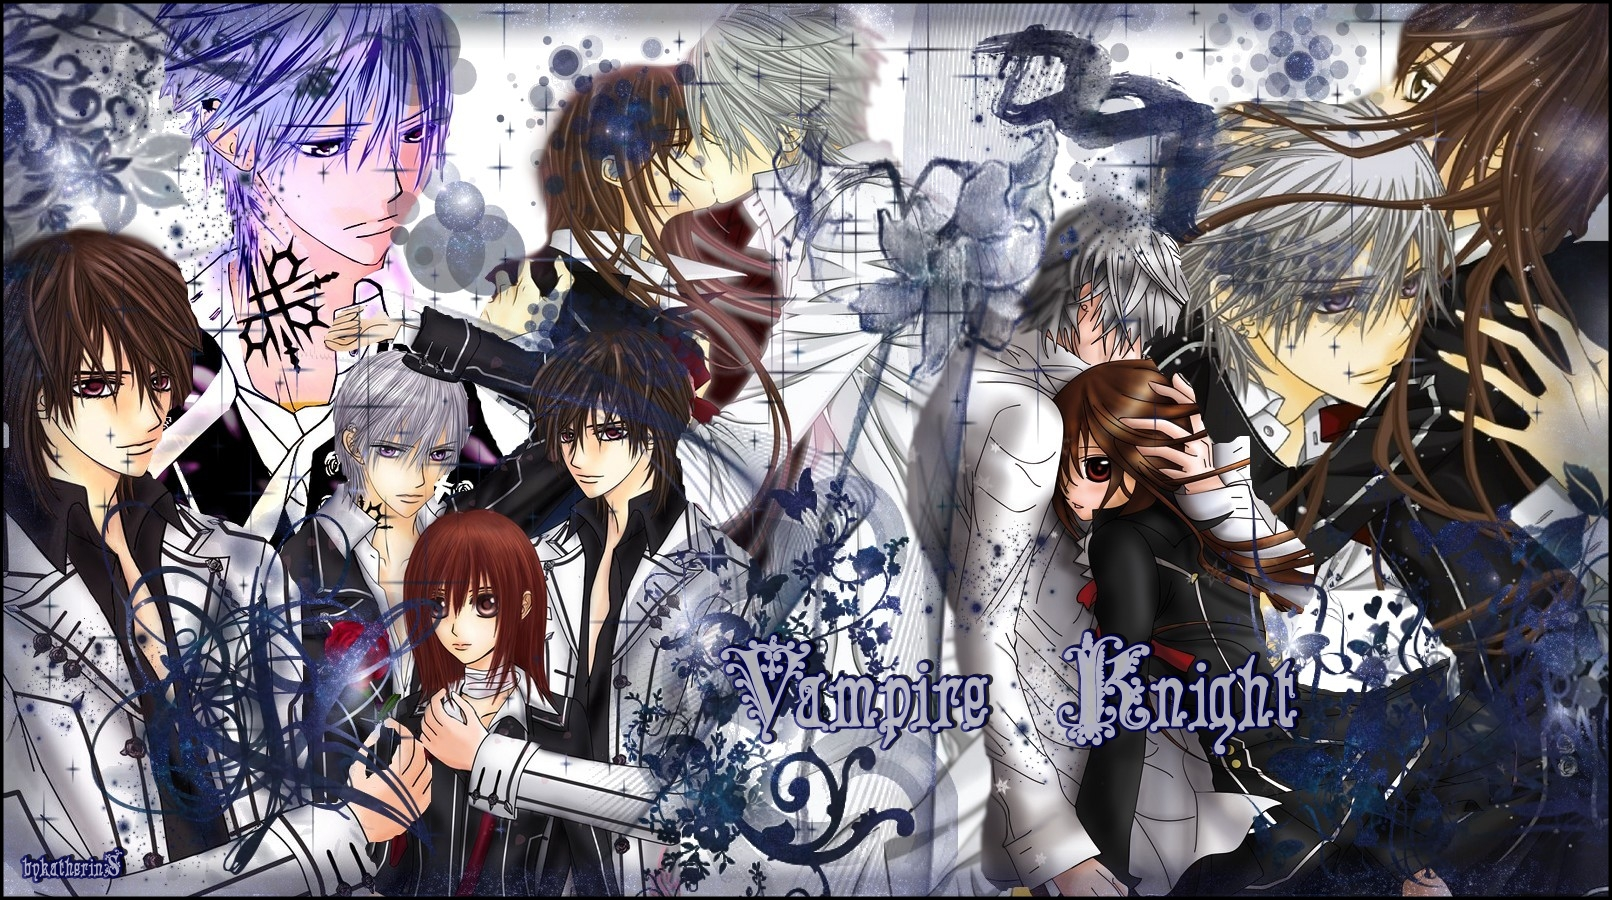 Vampire Knight Wallpaper And Background Image 1612x900